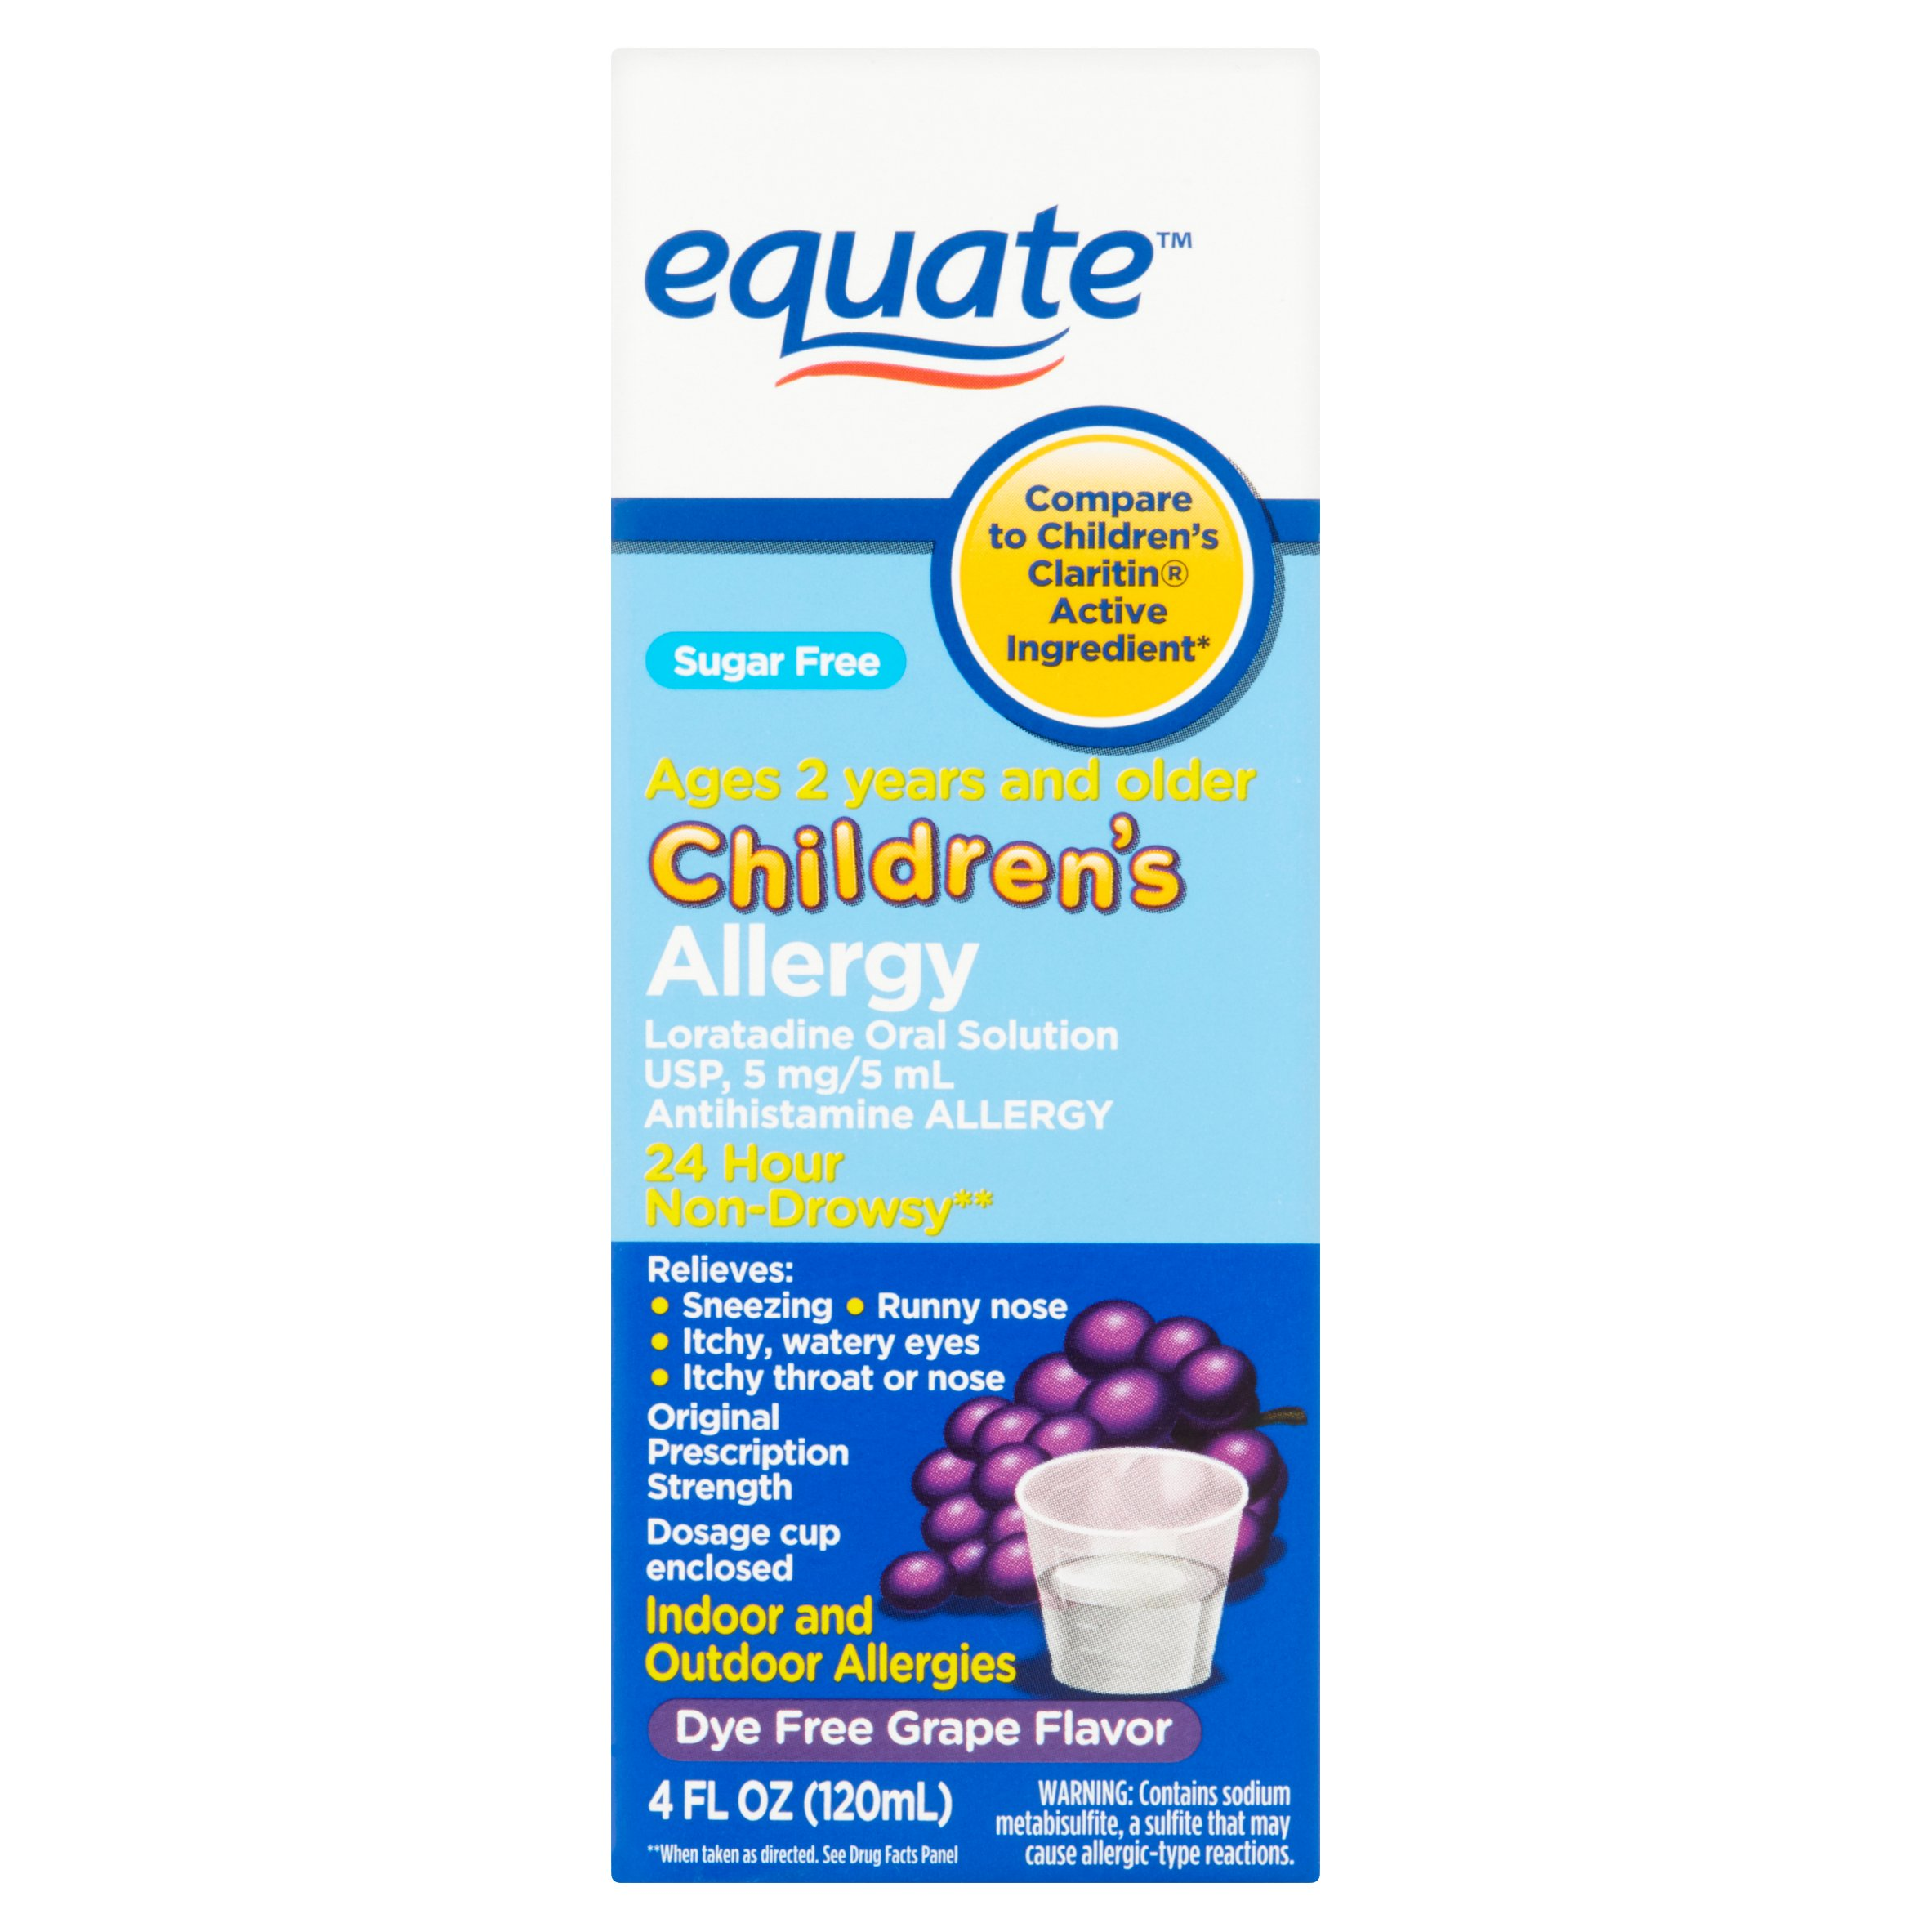 Equate Sugar Free Children's Allergy Relief Loratadine Dye-Free Grape Suspension, 4 Oz - Walmart.com at Walmart - Vision Center in Connersville, IN | Tuggl